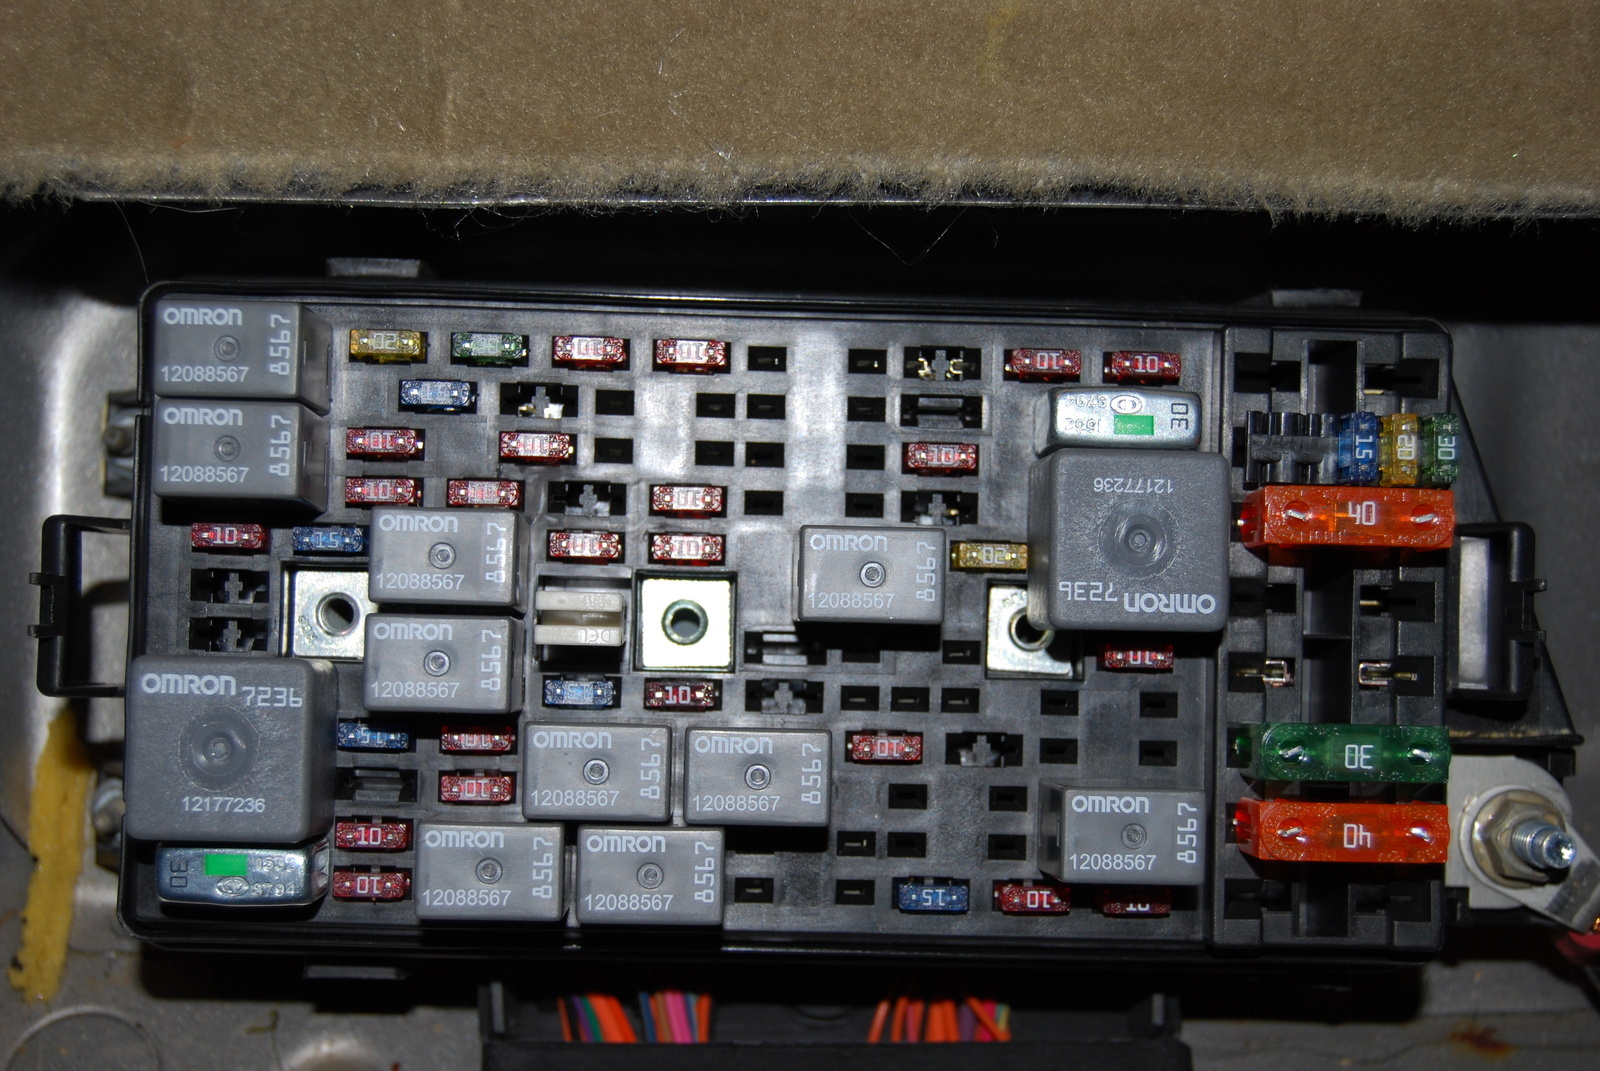 98 Lesabre Fuse Diagram Wiring Library Electrical Panel Box To The Left Is A 2002 Buick Rear Seat Switch U2022 Rh 140 82 24